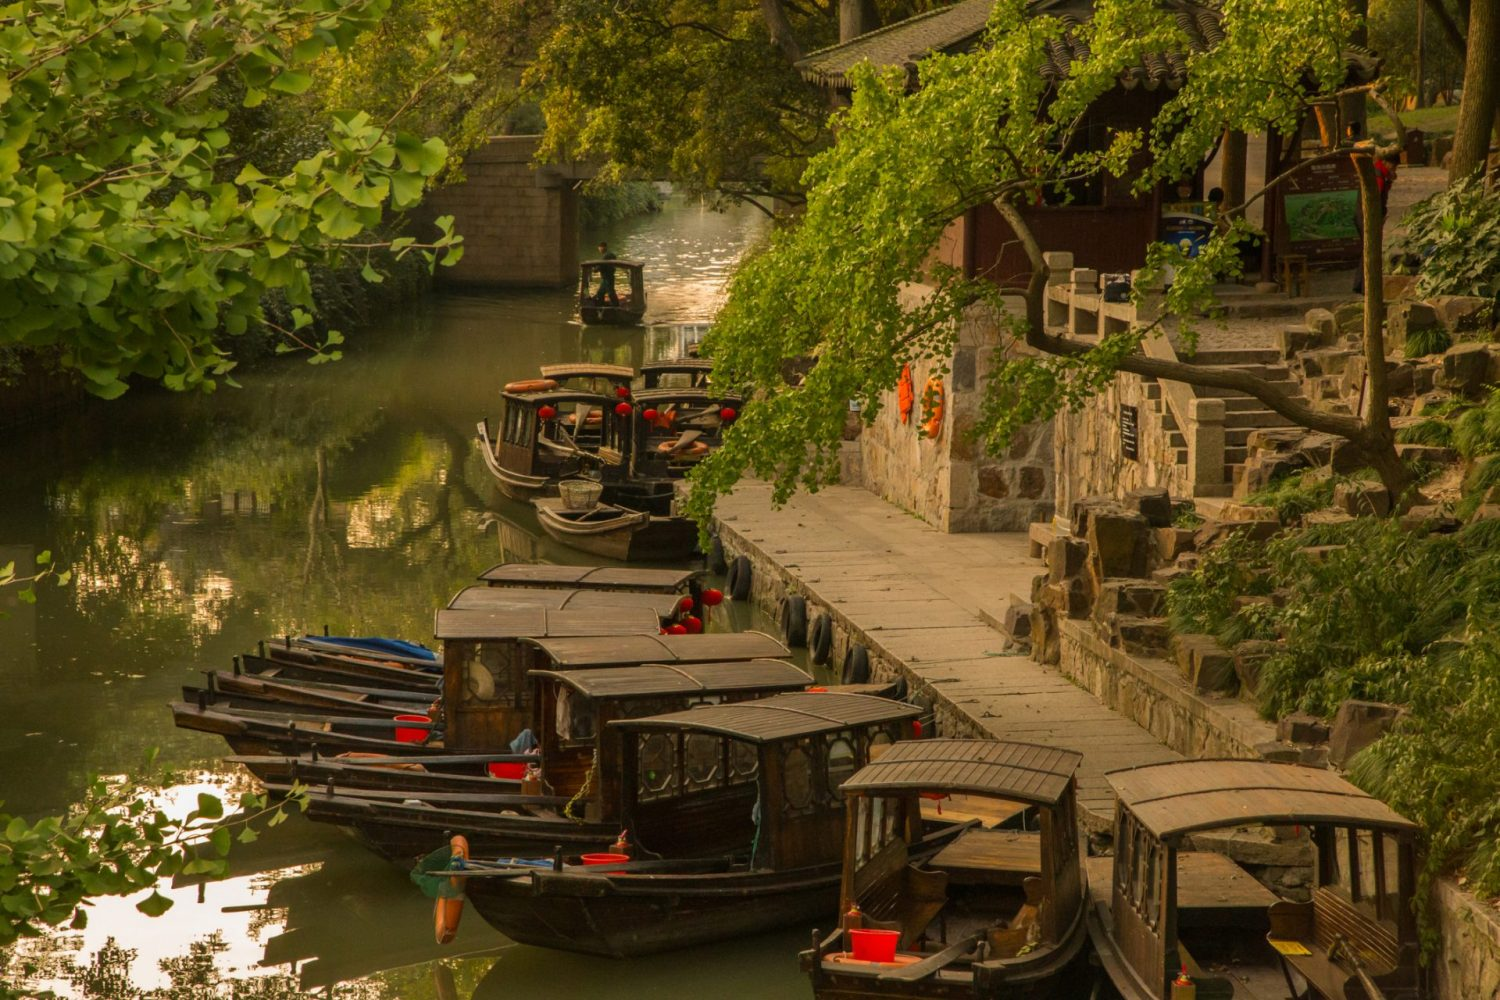 The Suzhou water canals ancient town in the suburbs of the Shanghai city, a nice travel destination with typical chinese construction, water canals, boat trips and red chinese lanterns.